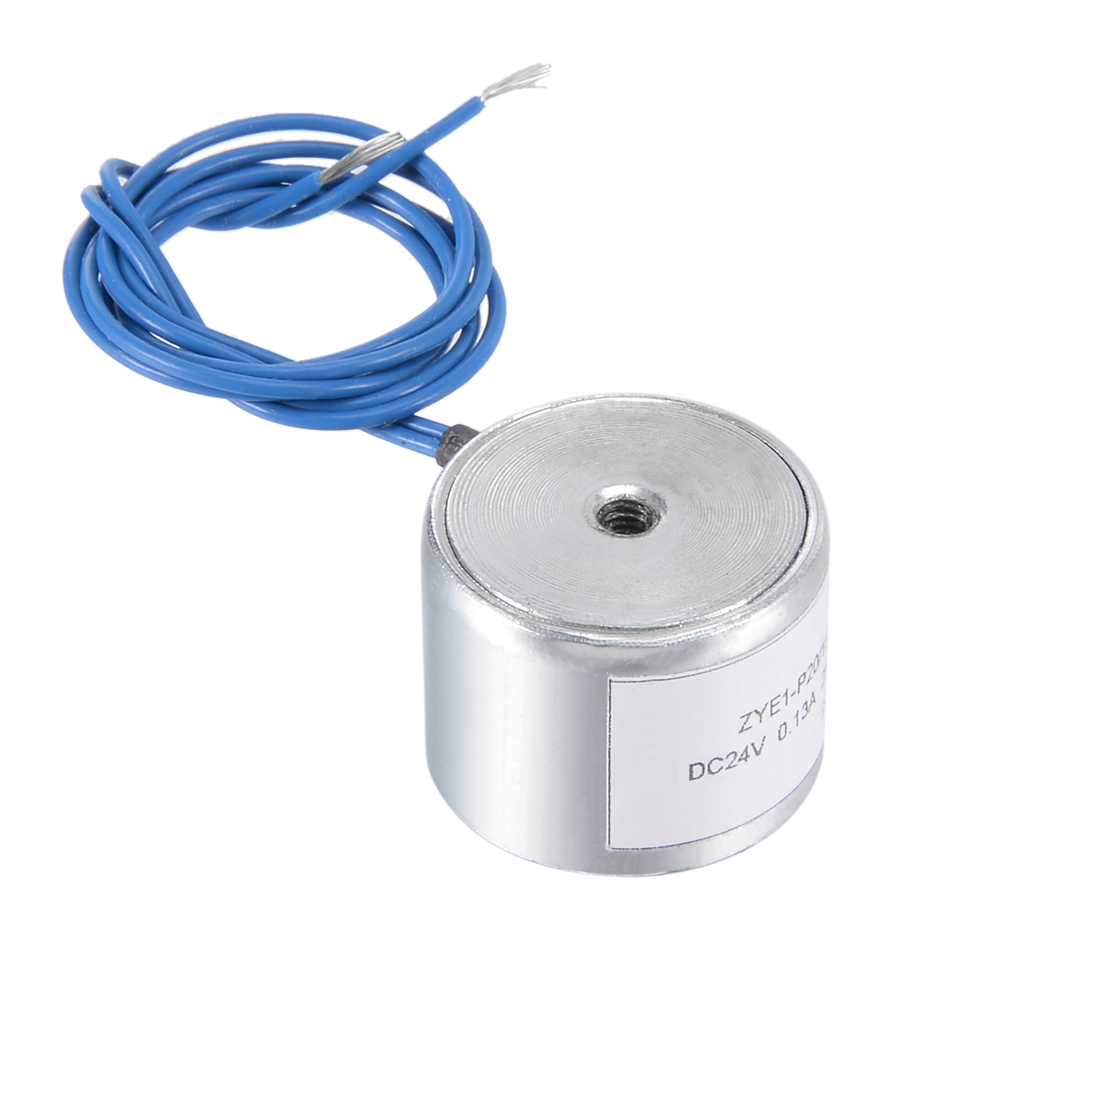 20mm x 15mm DC24V 0.13A 25N Sucking Disc Solenoid Lift Holding Electromagnet